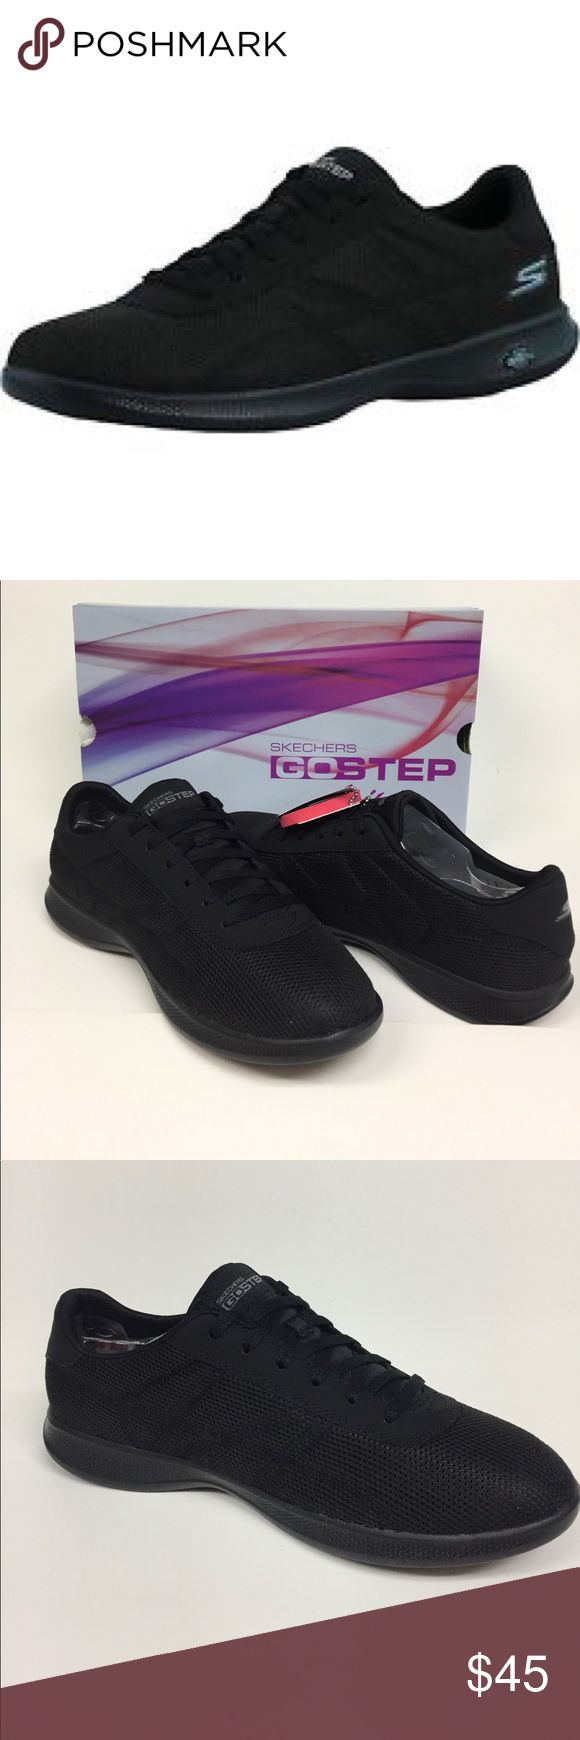 Skechers Go Step Lite women's Black Shoe 14488 NIB The sketchers go step light persistence shoe combines innovation and style in a modern athletic look. Features mesh and synthetic upper in a lace up walking casual sneakers design. Side S logo. Color is black. Brand new in box Skechers Shoes Athletic Shoes